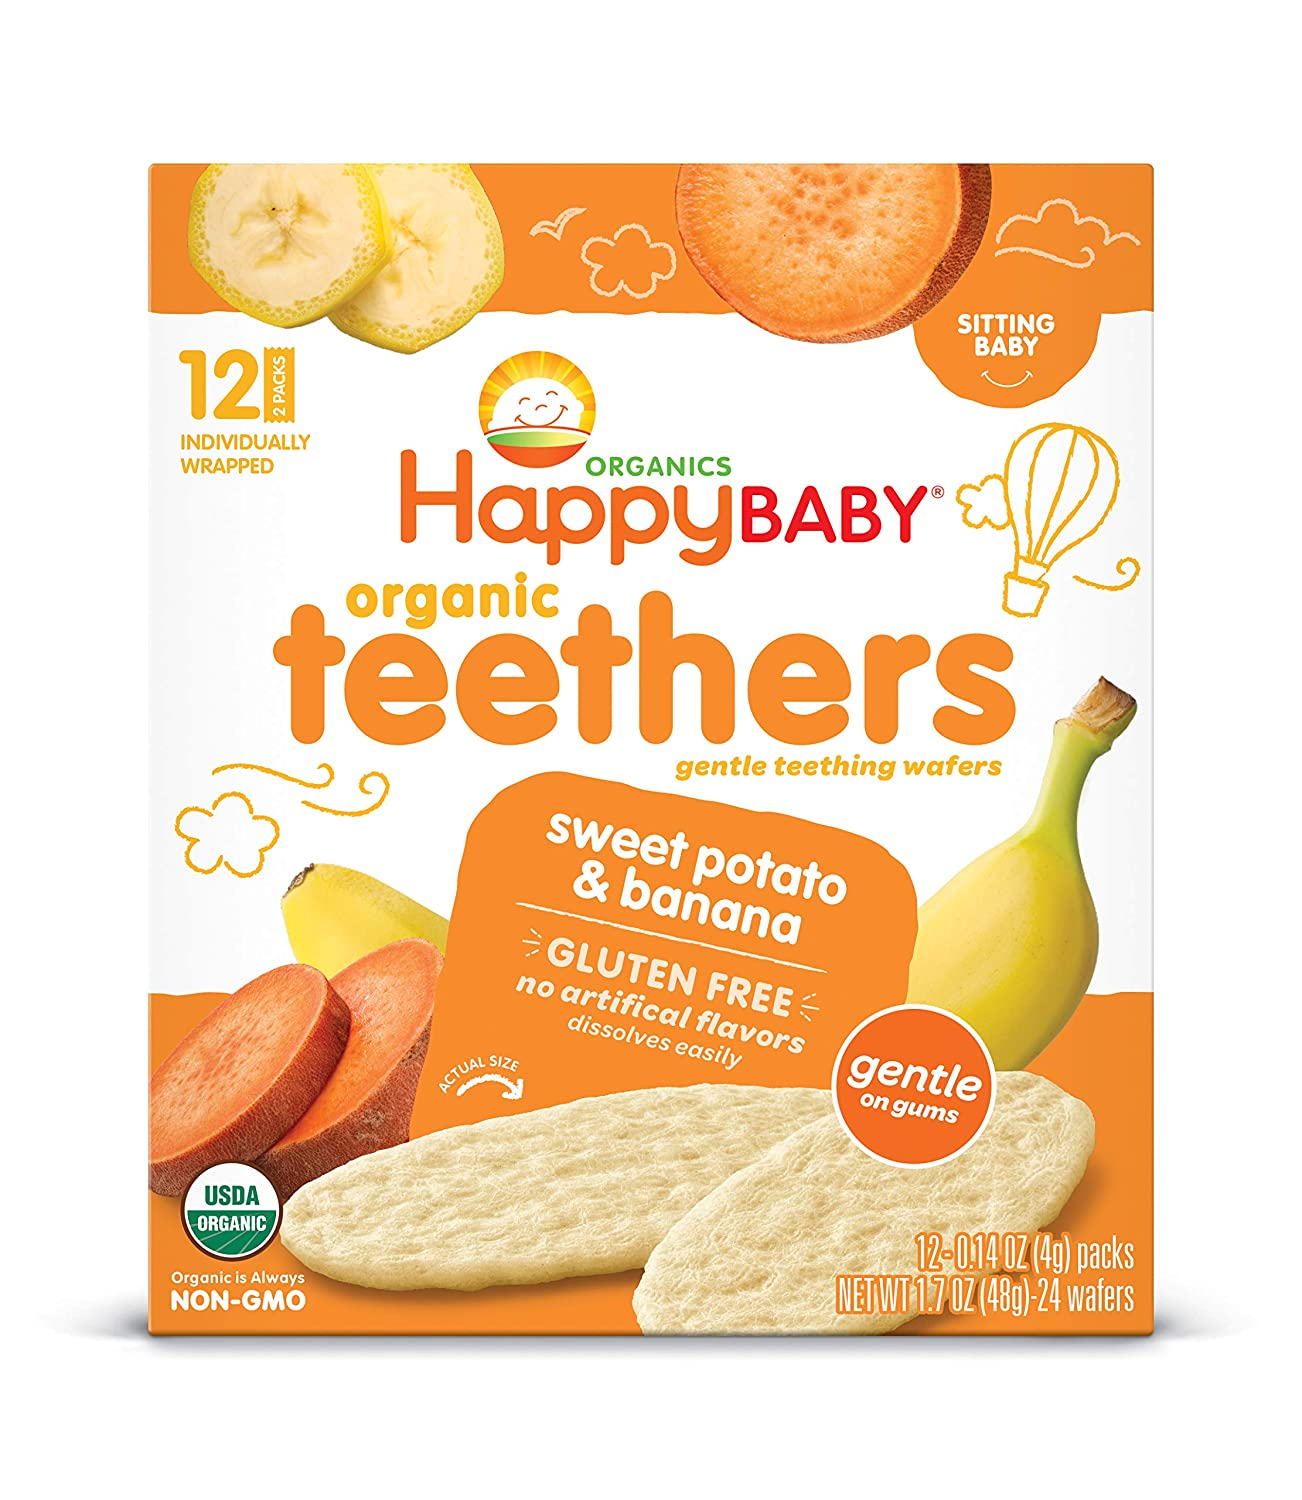 Happy Baby Gentle Teethers Organic Teething Wafers Banana Sweet Potato, 12 Count Box (Pack of 6) Soothing Rice Cookies for Teething Babies Dissolves Easily, Gluten-Free (Packaging May Vary)